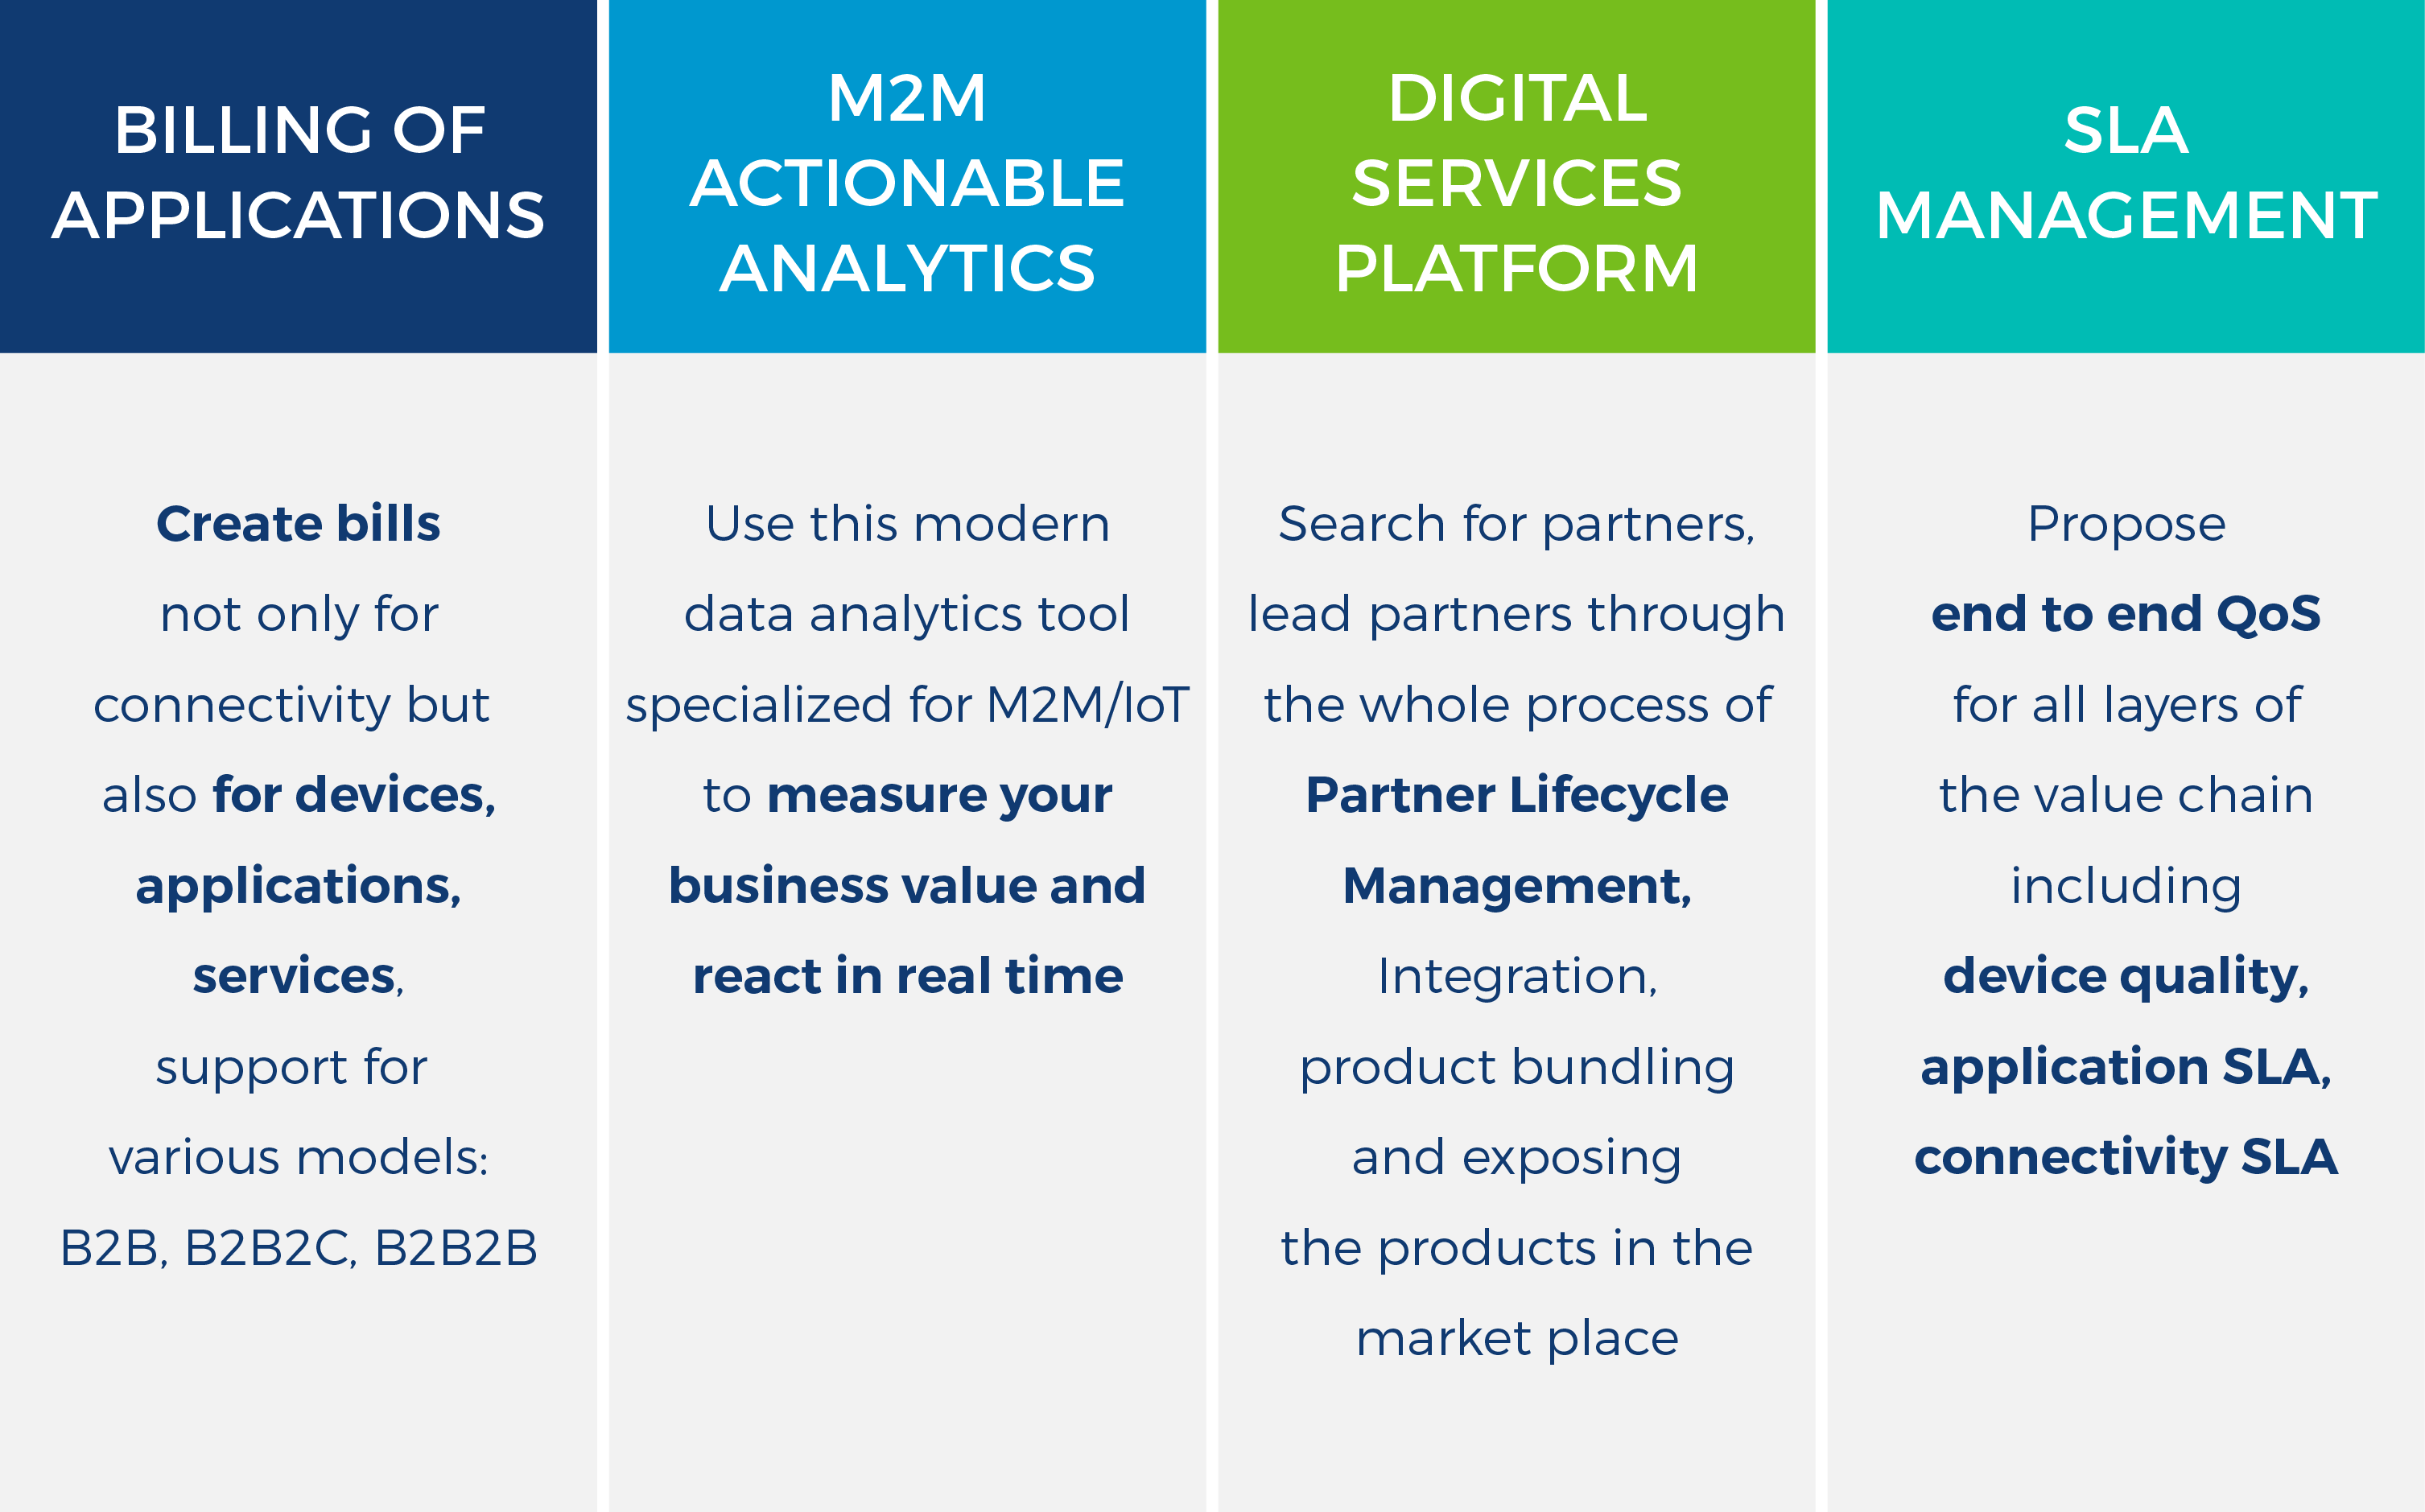 Comarch M2M Acionable Analytics